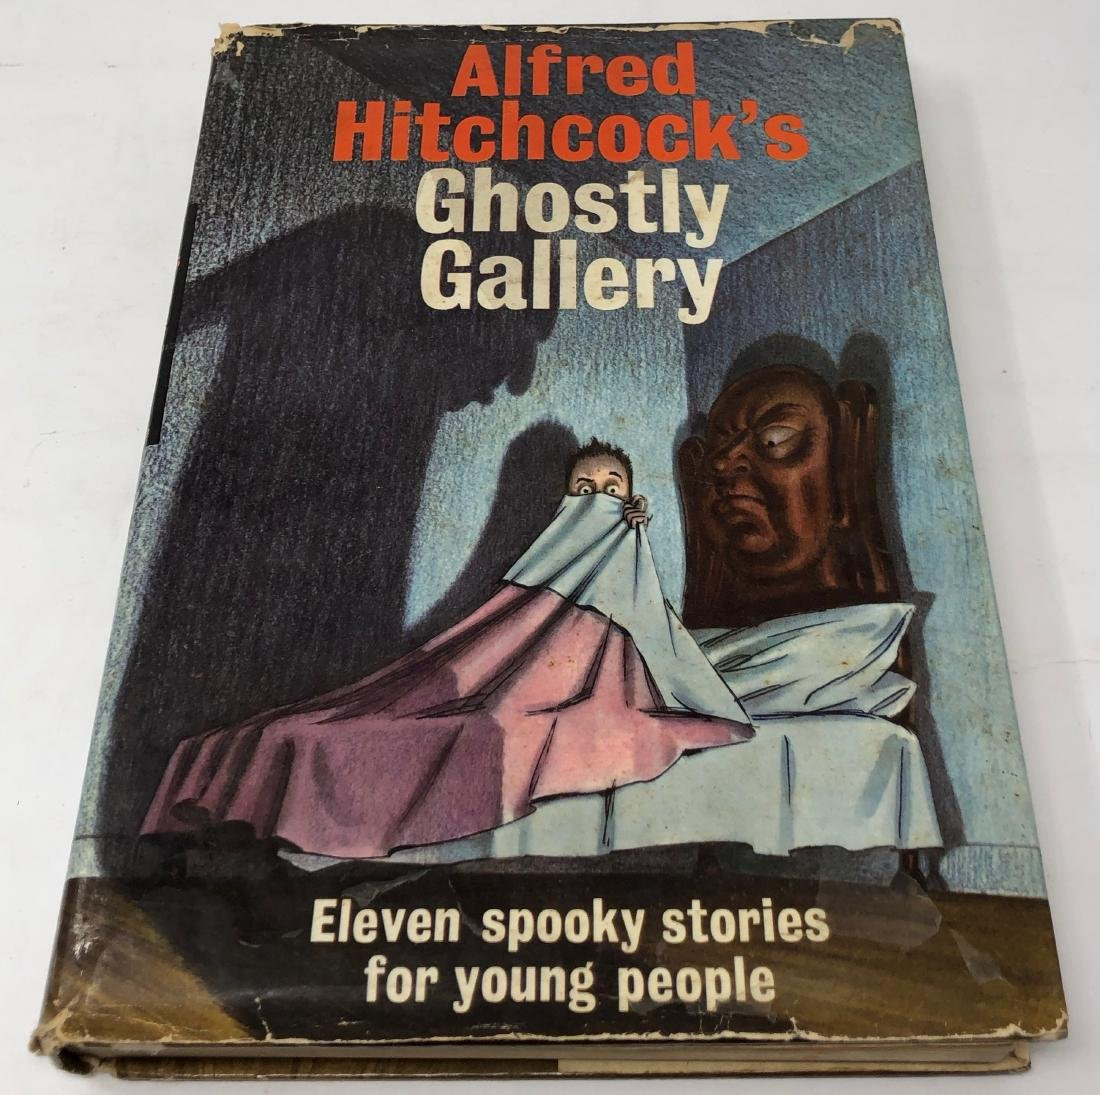 1st Edition, Alfred Hitchcock's Ghostly Gallery